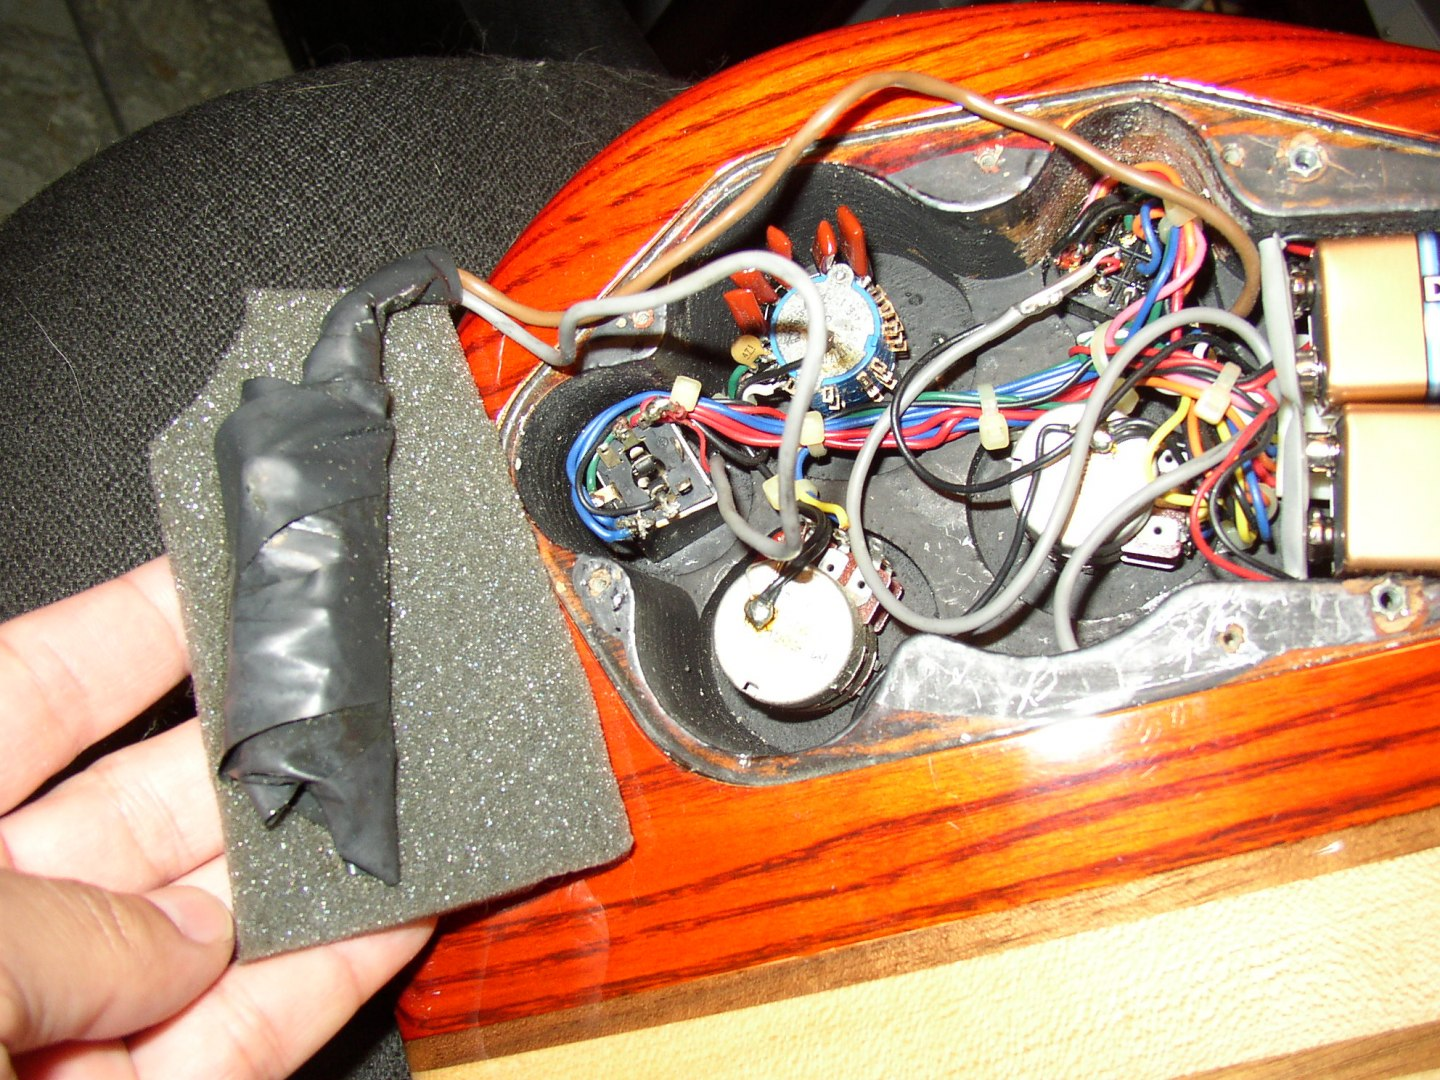 Aria Pro Ii Sb 1000 Bass Electronics Restoration In Progress And Varitone Switch Wiring Diagram Now Theres The Beast Of A Sounds Great But Its Like Faberg Egg To Construct